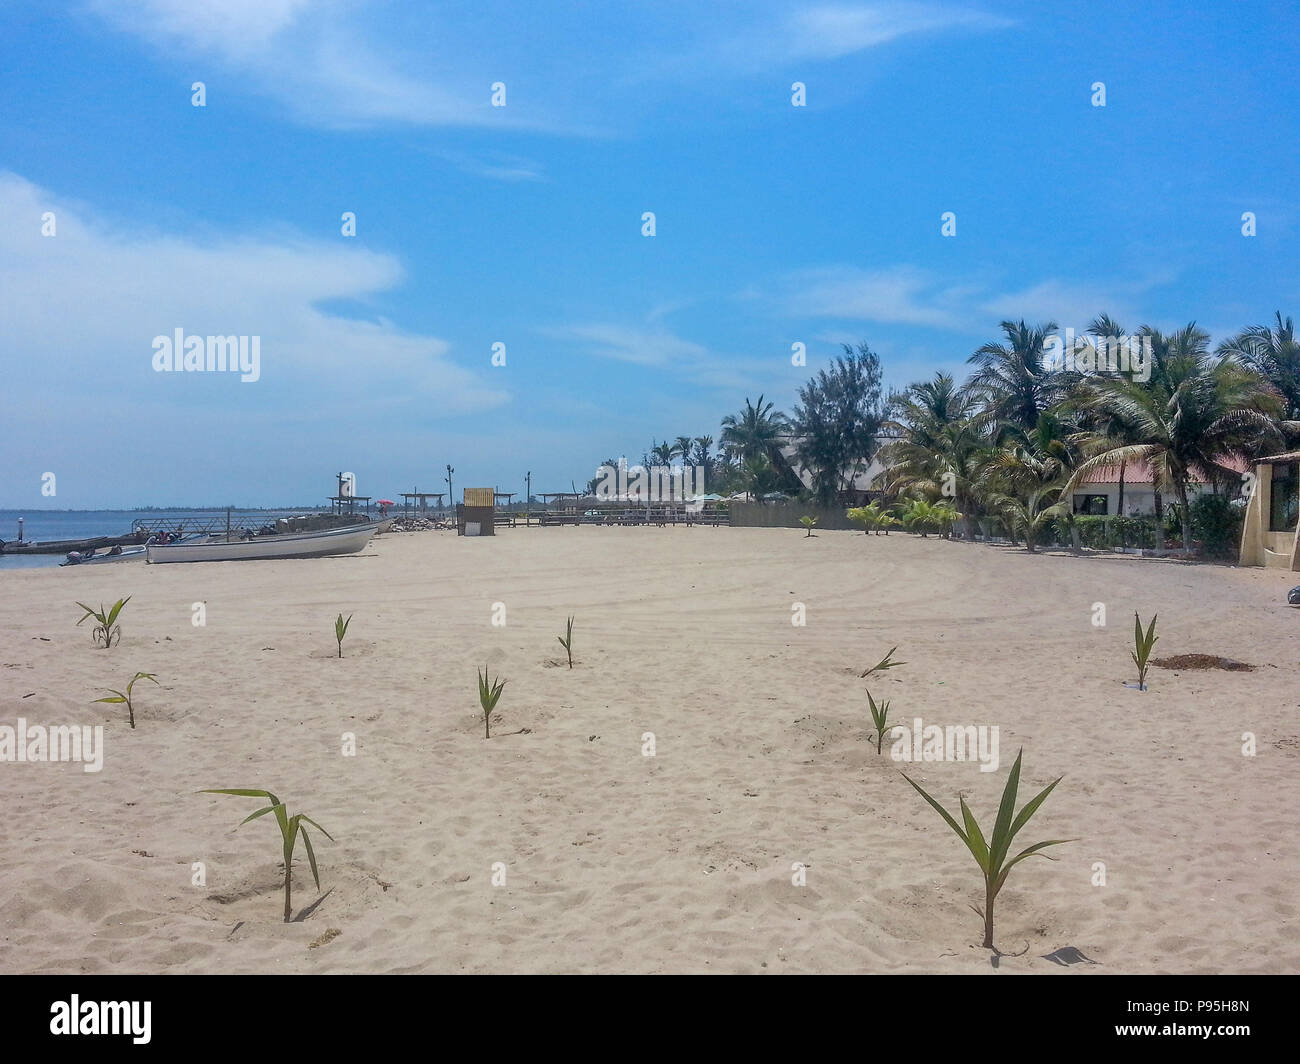 tropical beach with palm trees, sand, boat, houses and blue sky, located on the island of Mussulo in Luanda, Angola - Stock Image